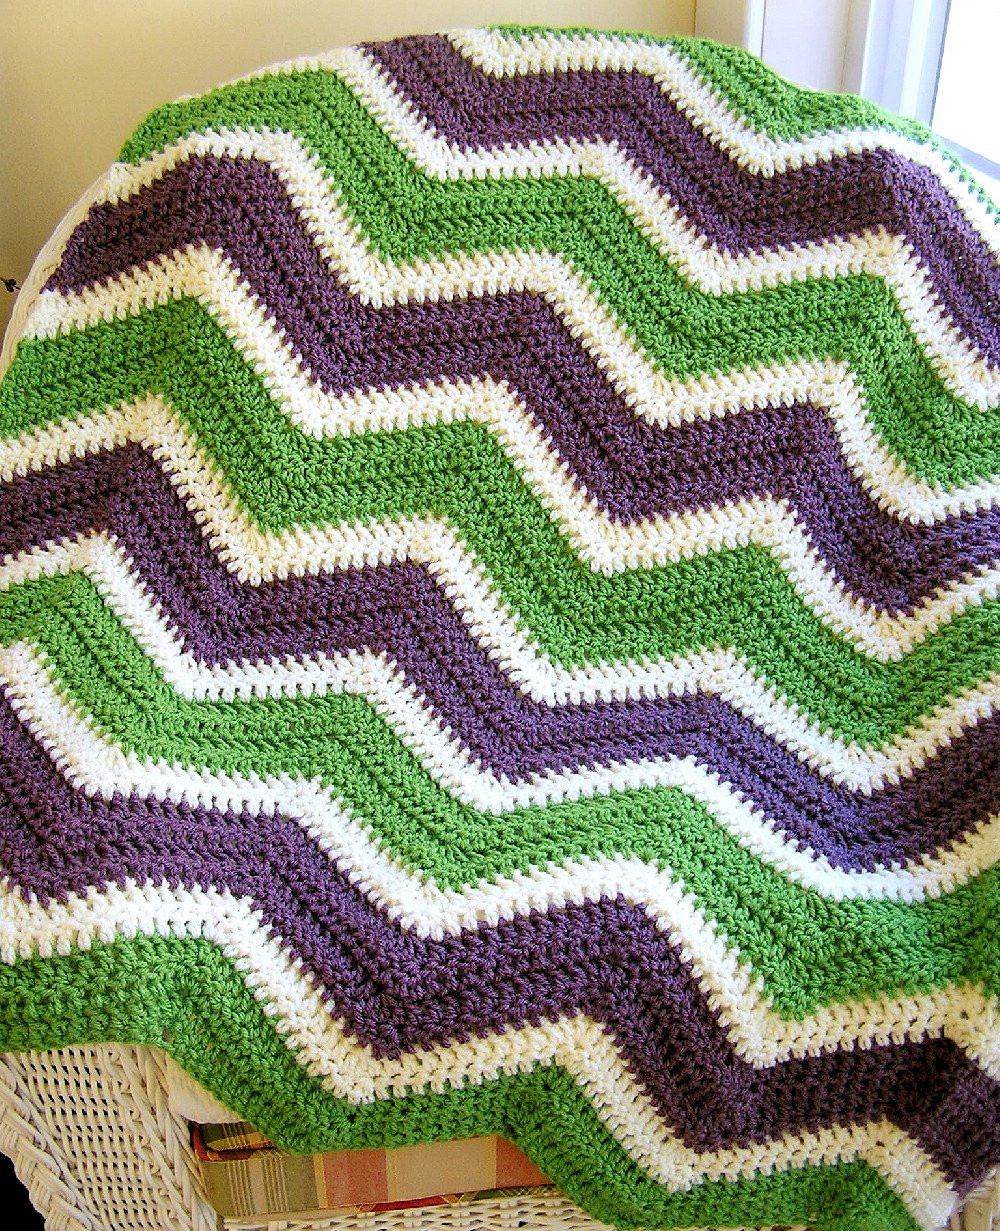 Chevron Crochet Afghan Elegant New Chevron Zig Zag Baby Blanket Afghan Wrap Crochet Knit Lap Of Charming 41 Models Chevron Crochet Afghan